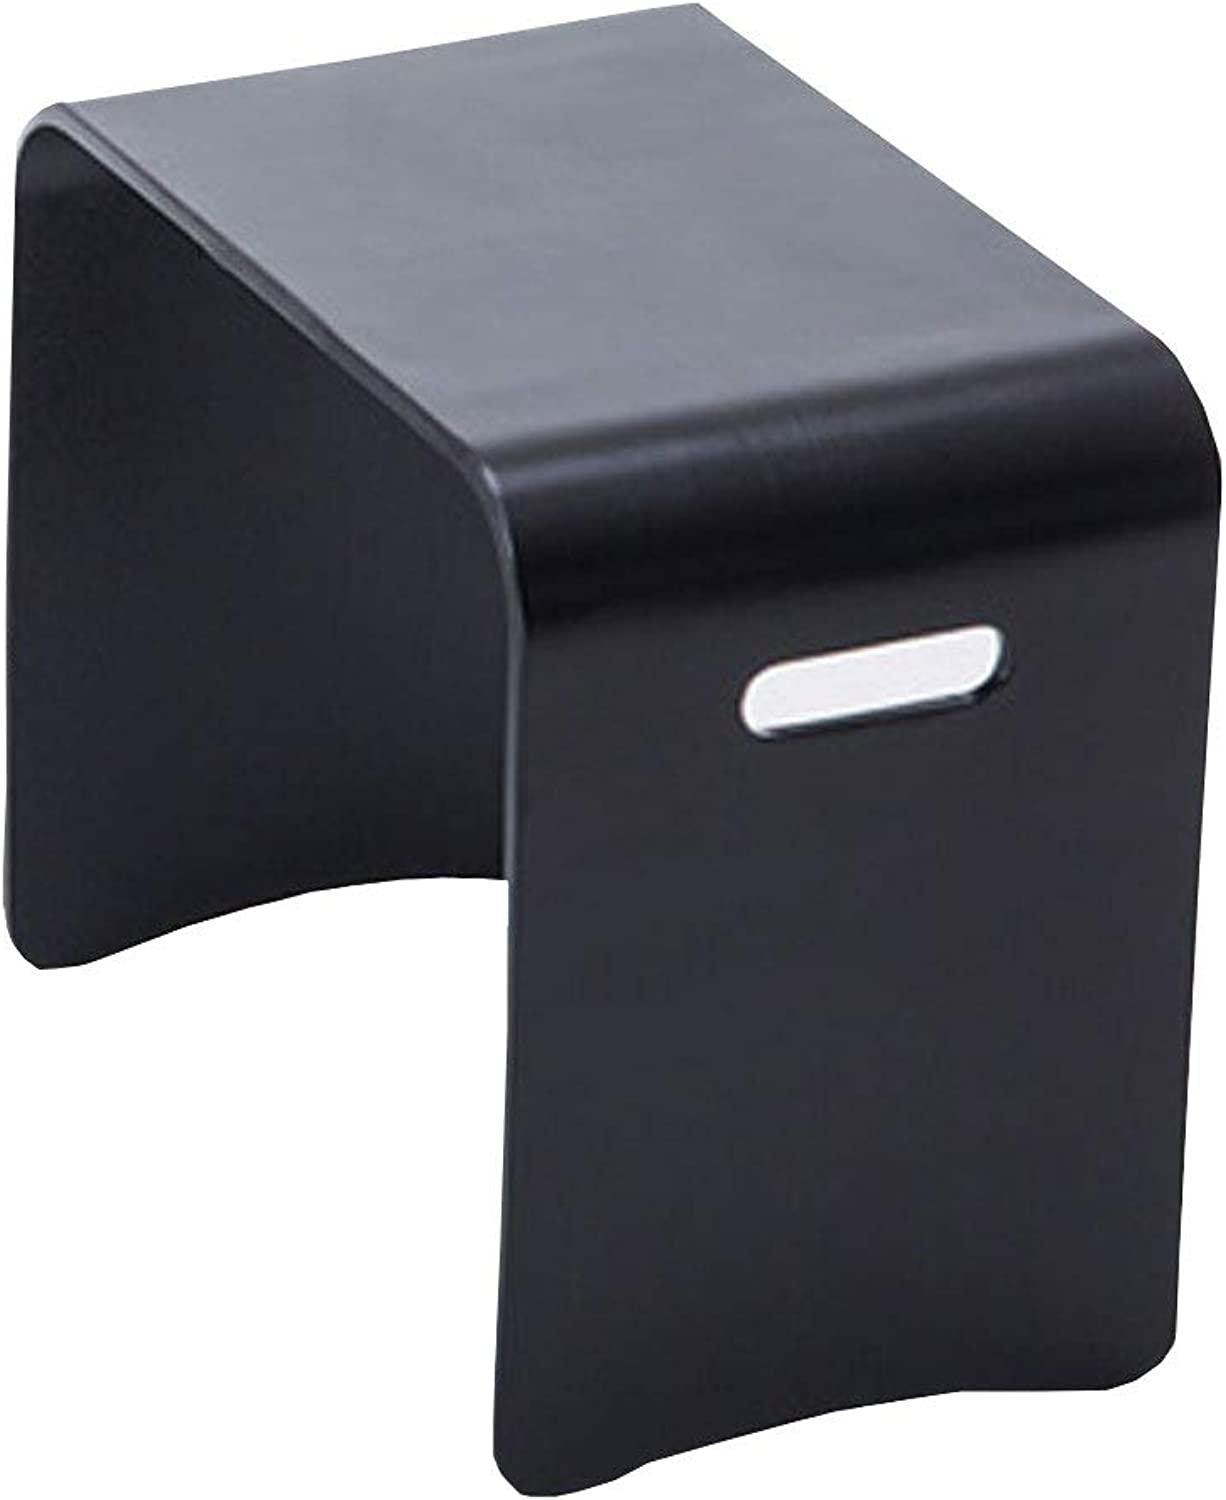 Stool Home Small Square Stool Black Solid Wood Stool Simple shoes Bench Bed Table Coffee Table Dining Table Stool (Size   S)